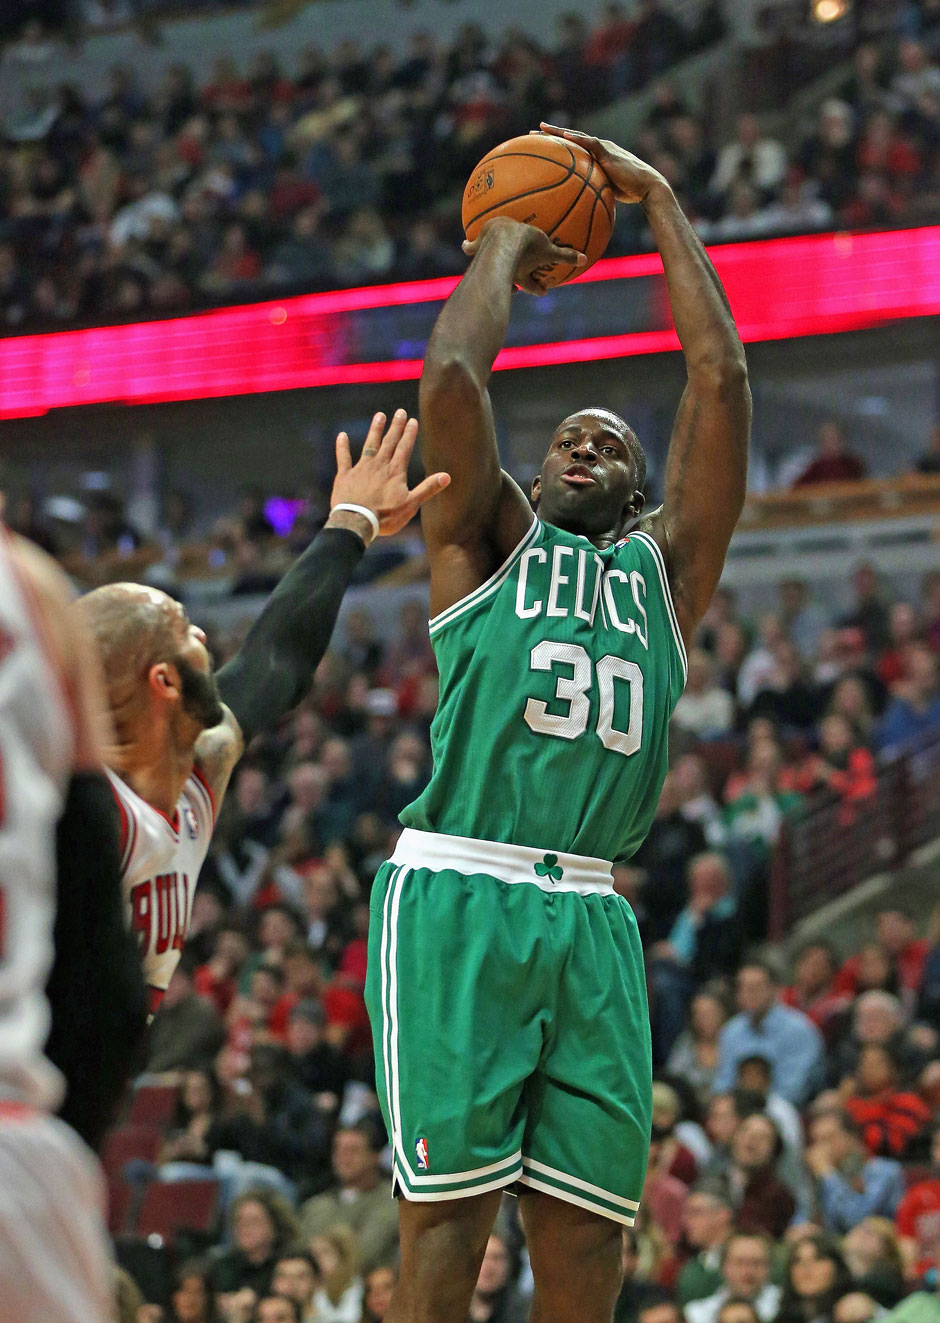 Forward: Brandon Bass (10,9 Punkte, 5,9 Rebounds)